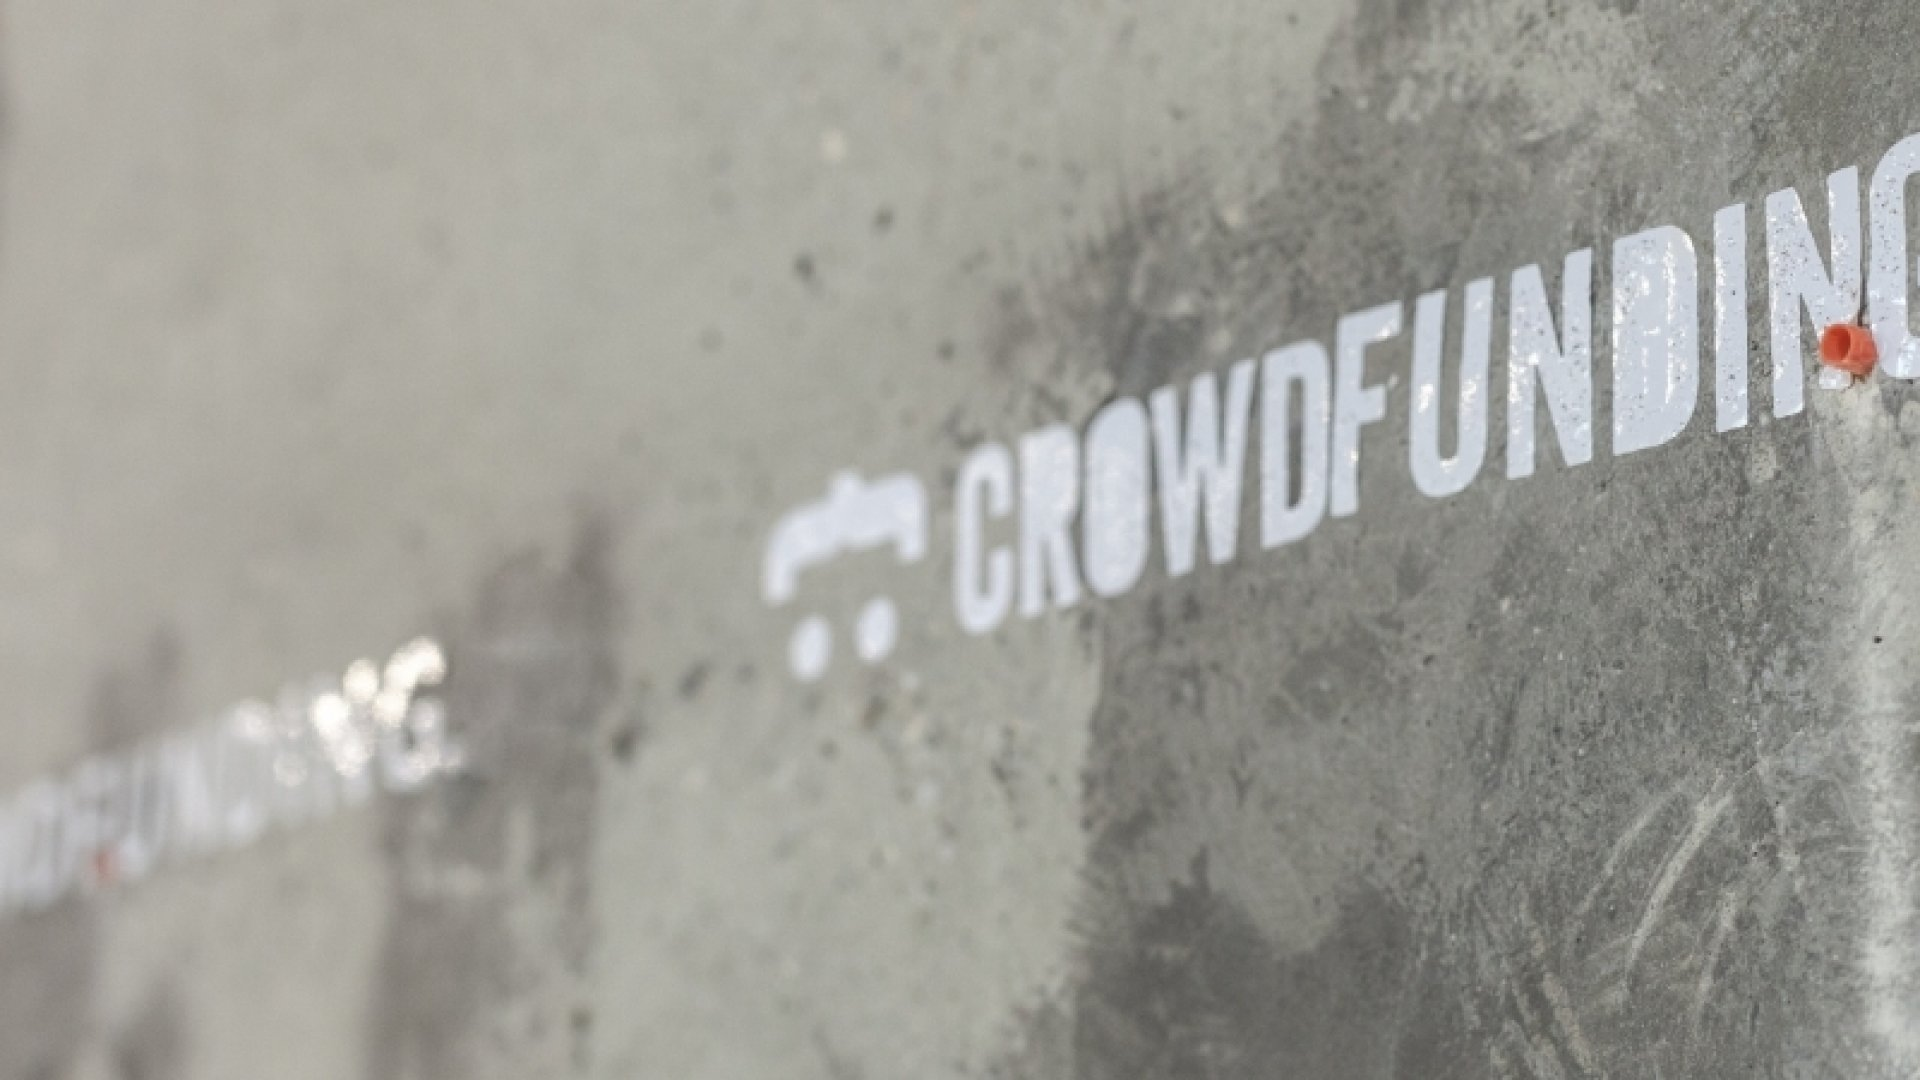 Equity Funding vs. Crowdfunding: What's Right For Your Business?